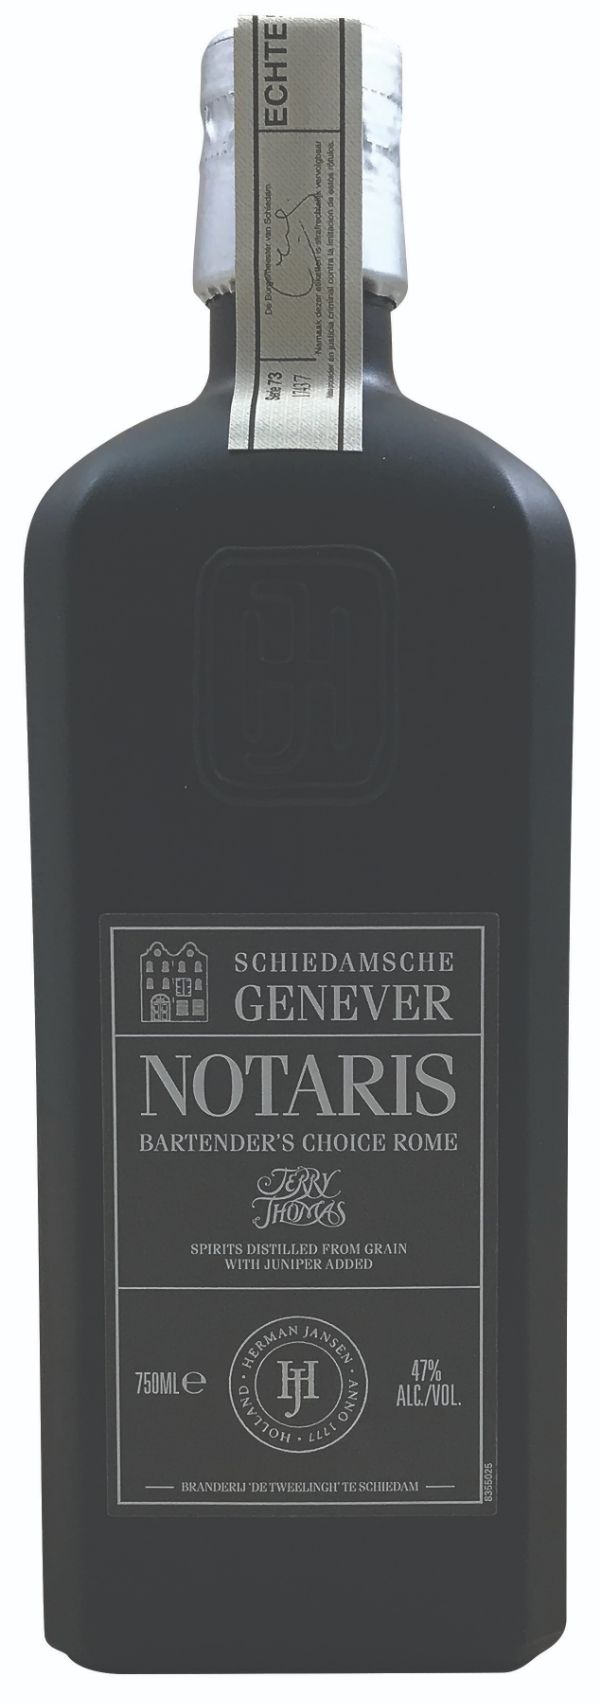 HJ Notaris Bartender's Choice Rome Edition Genever